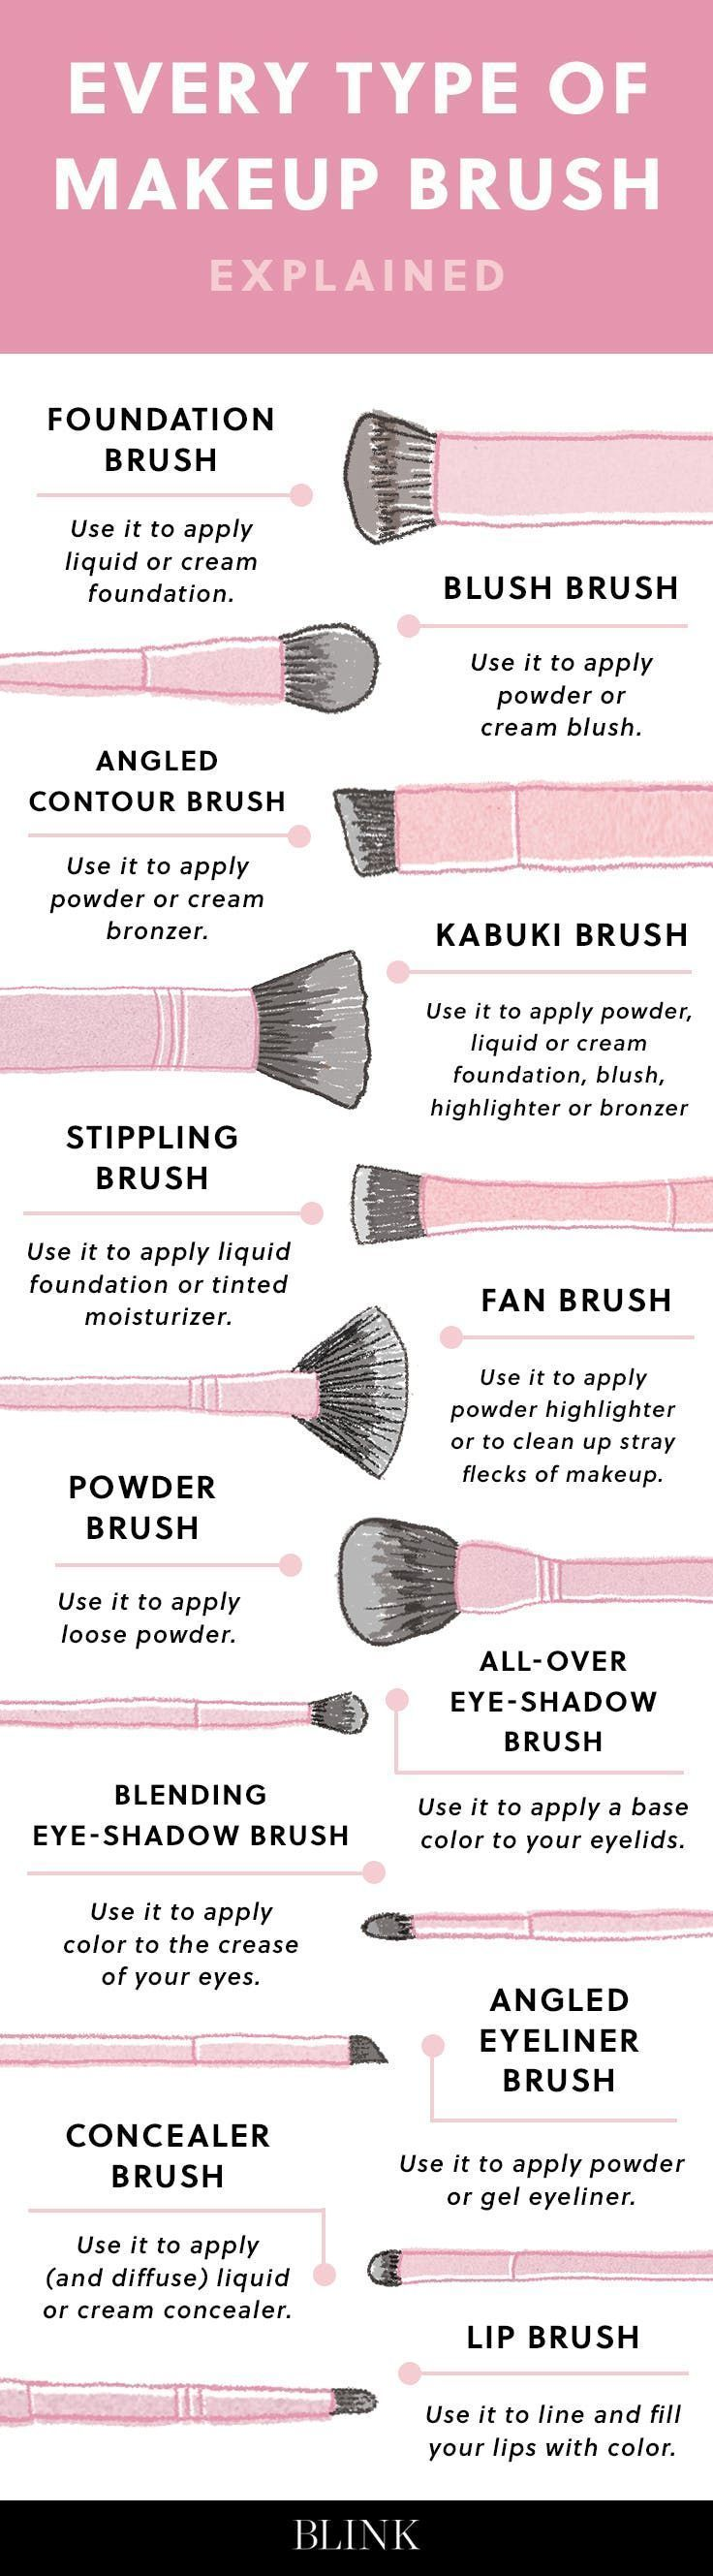 Every Type of Makeup Brush, Finally Explained via